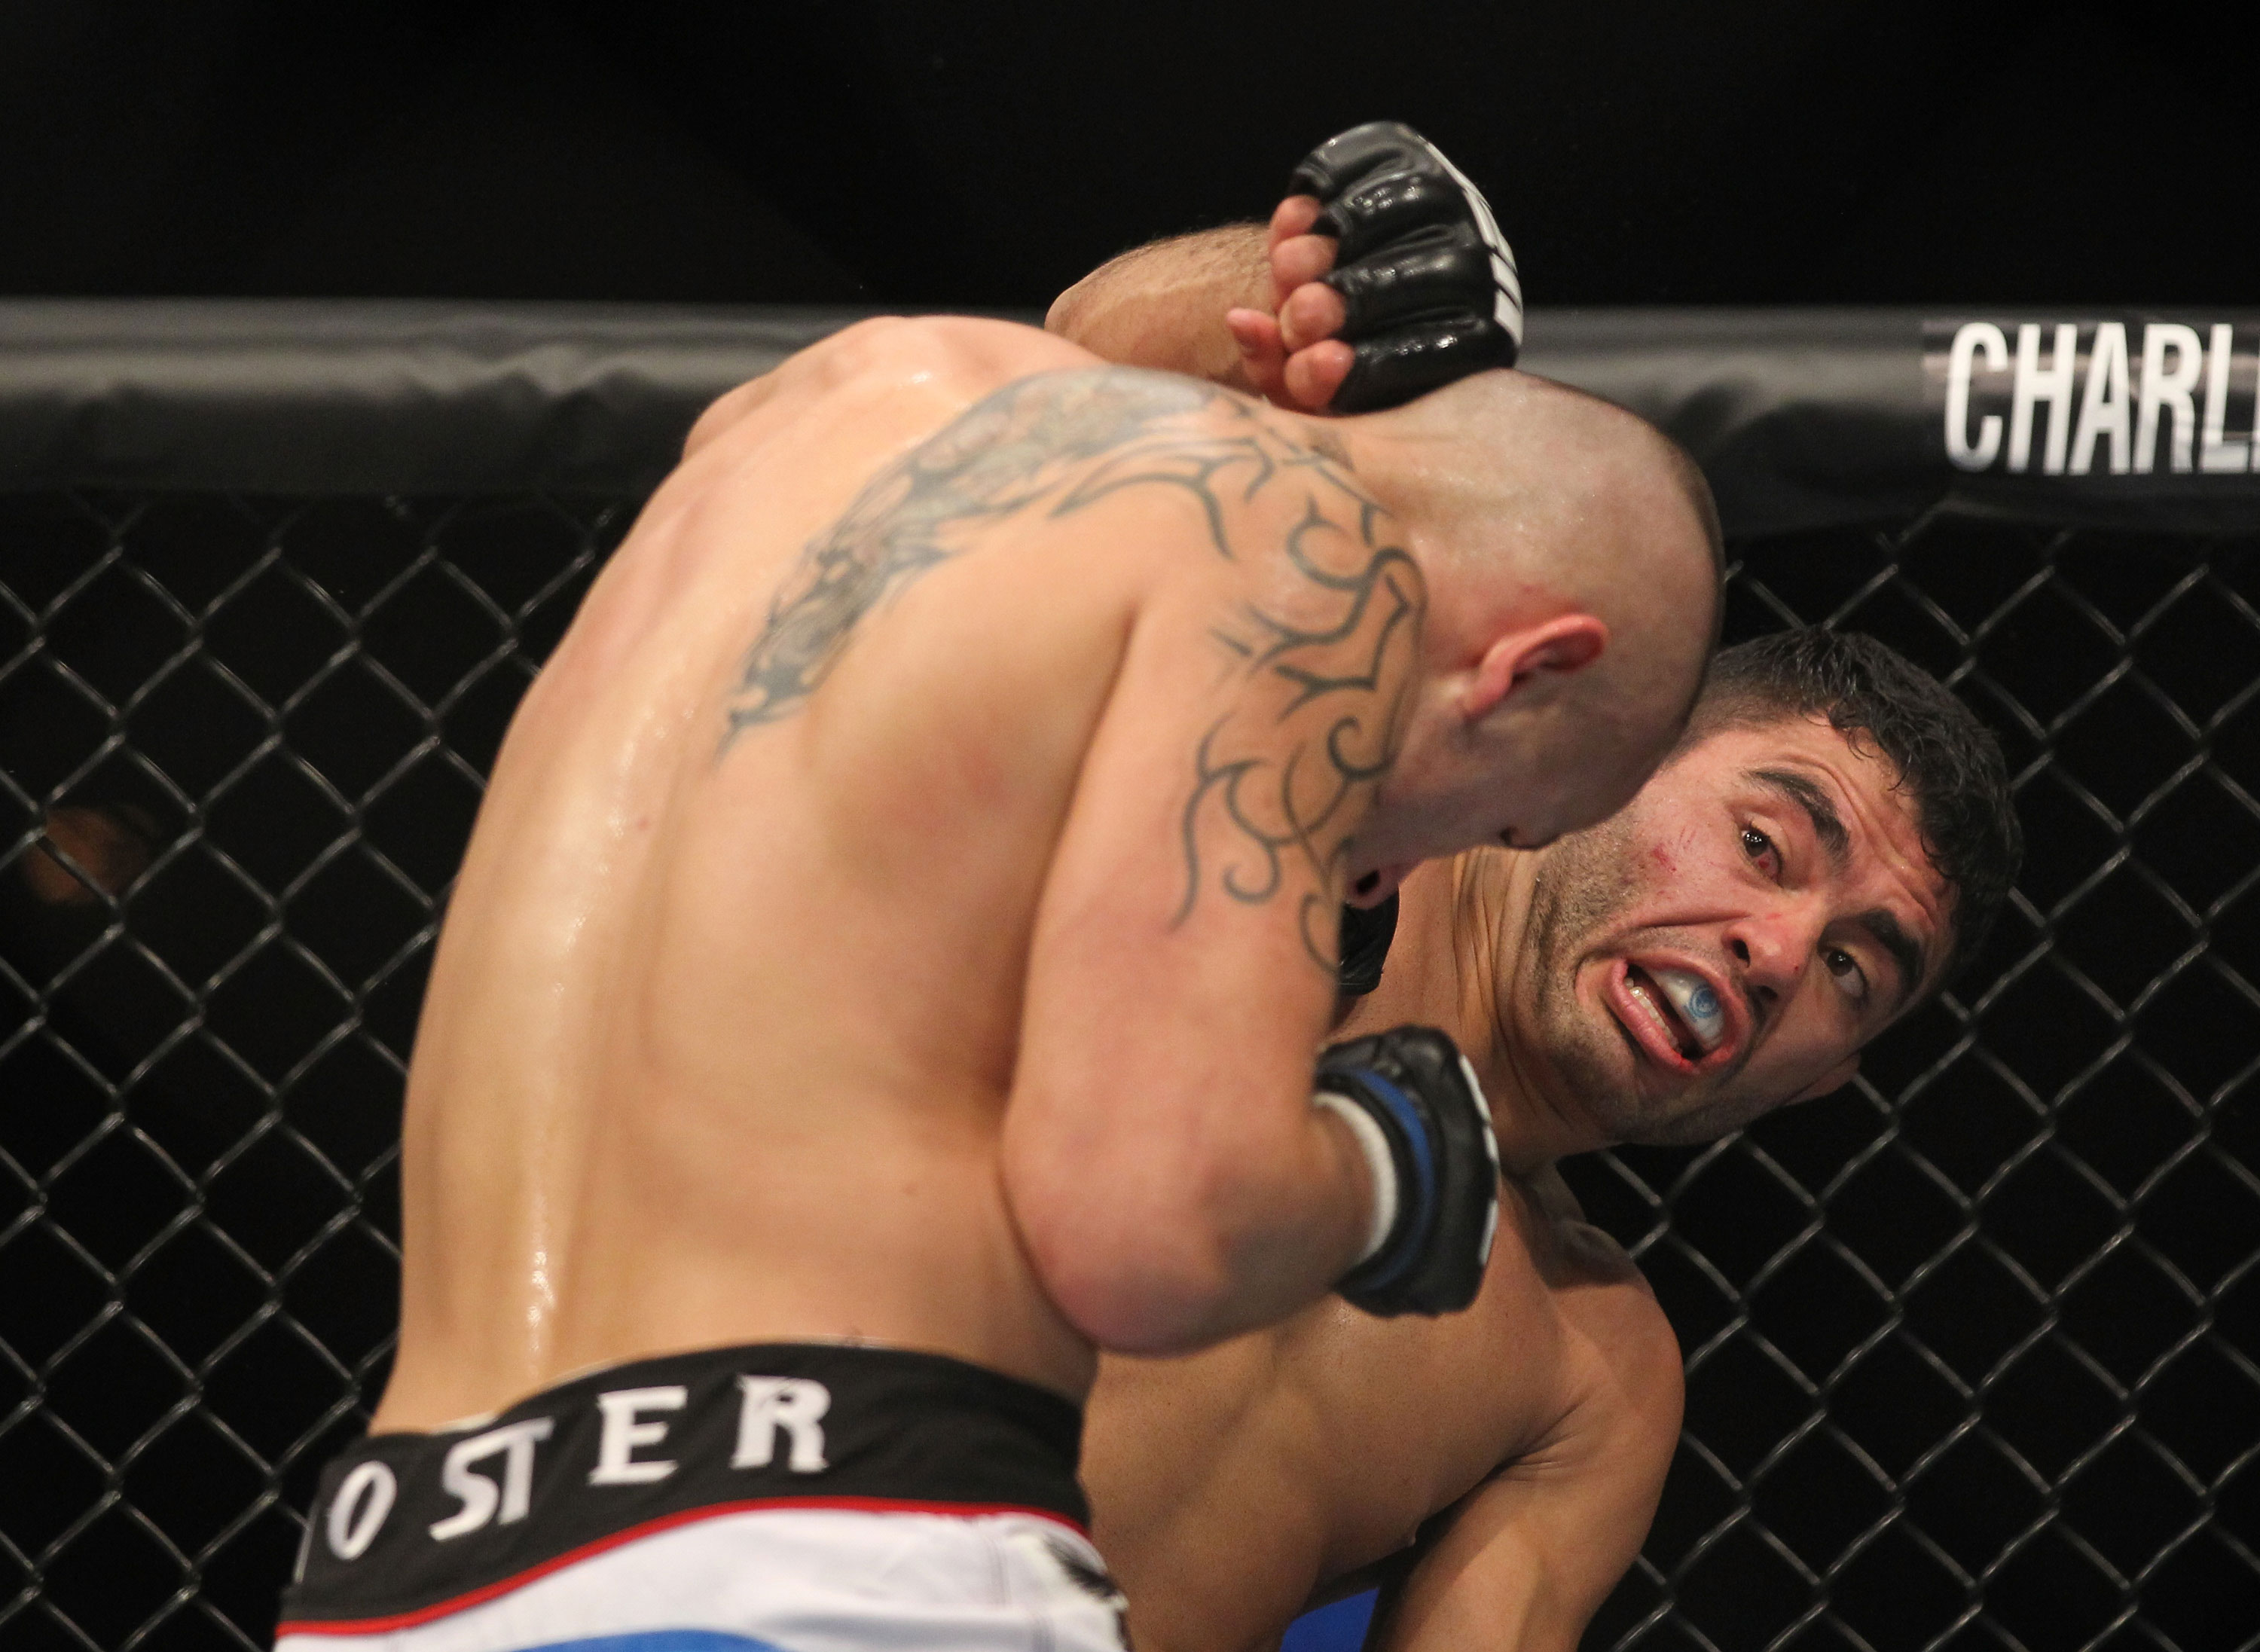 LAS VEGAS, NV - FEBRUARY 04:  Rafael Natal (right) punches Michael Kuiper during the UFC 143 event at Mandalay Bay Events Center on February 4, 2012 in Las Vegas, Nevada.  (Photo by Josh Hedges/Zuffa LLC/Zuffa LLC via Getty Images) *** Local Caption *** Rafael Natal; Michael Kuiper